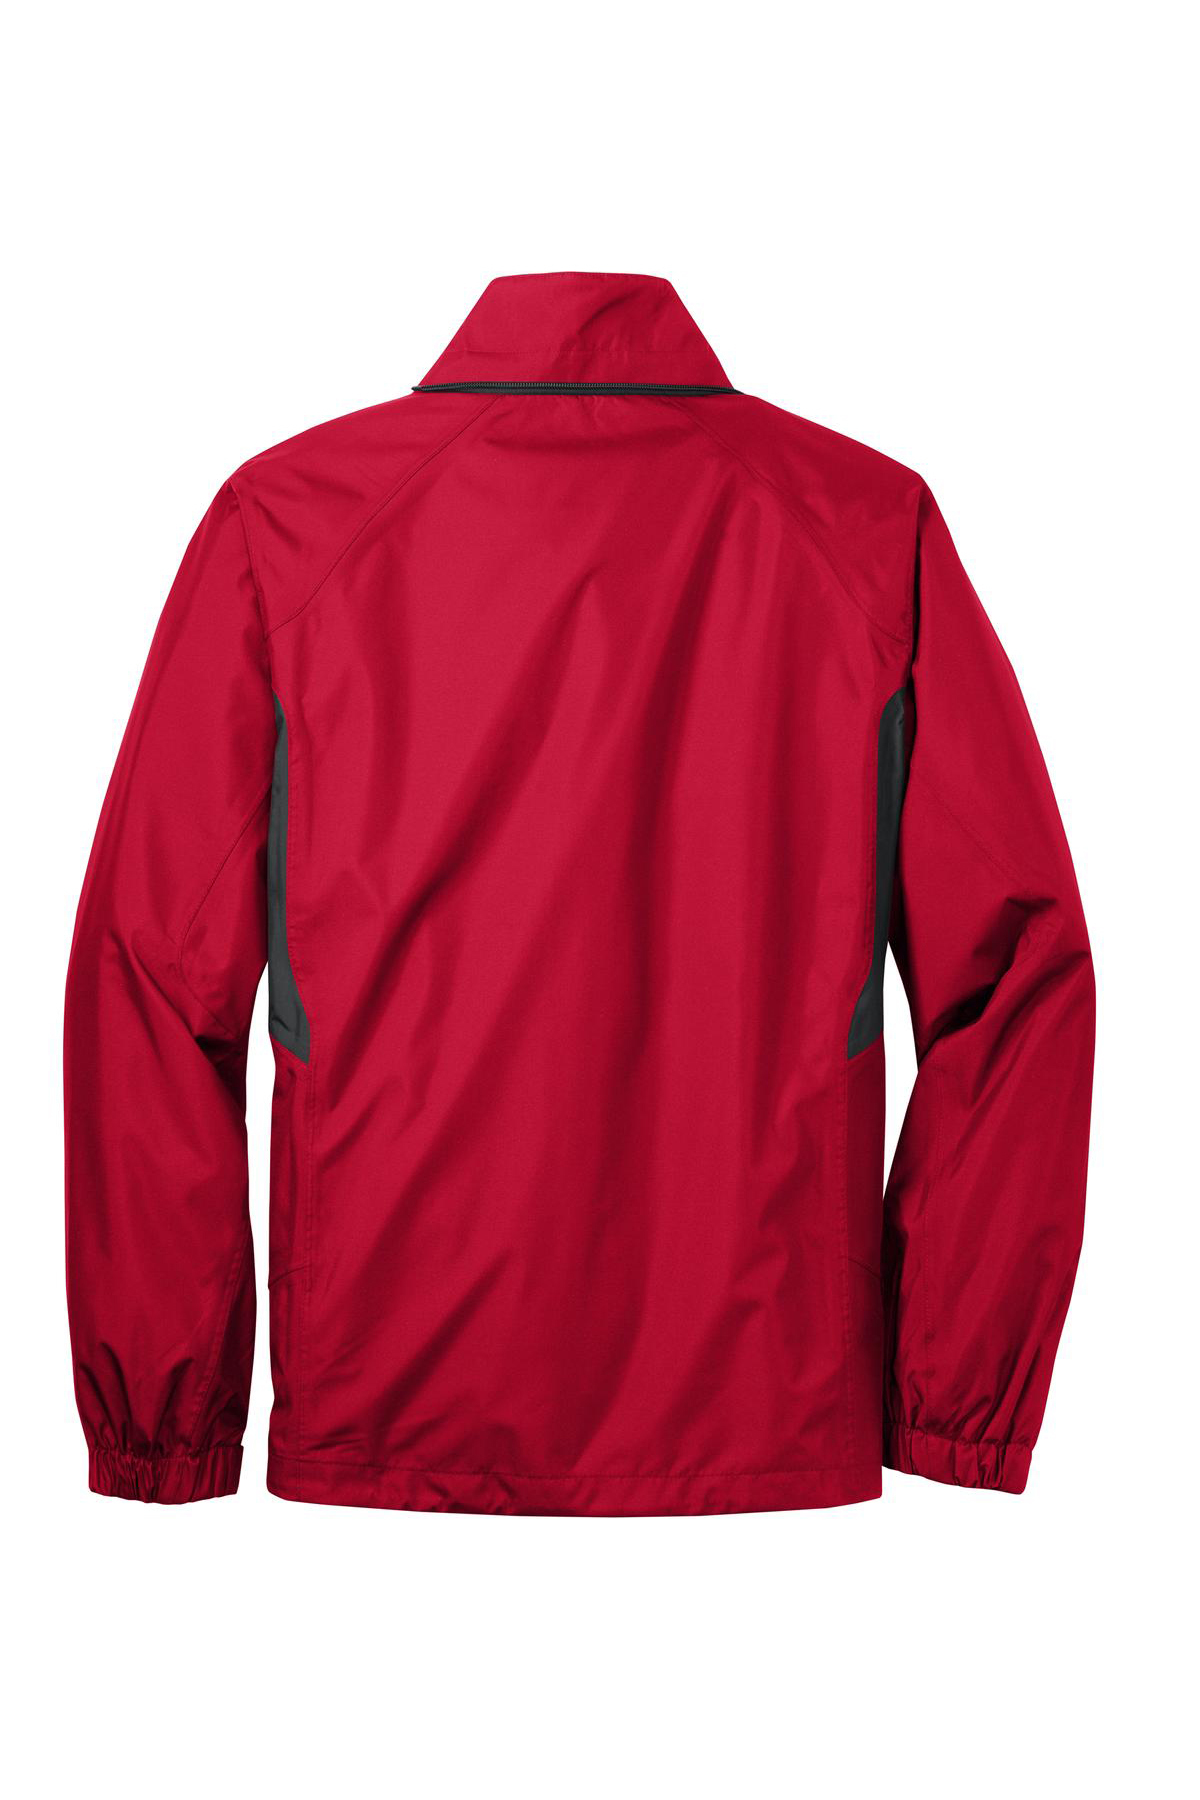 954ca7941cf3 ... Eddie Bauer® - Rain Jacket. A maximum of 8 logos have been uploaded.  Please remove a logo from My Logos to continue